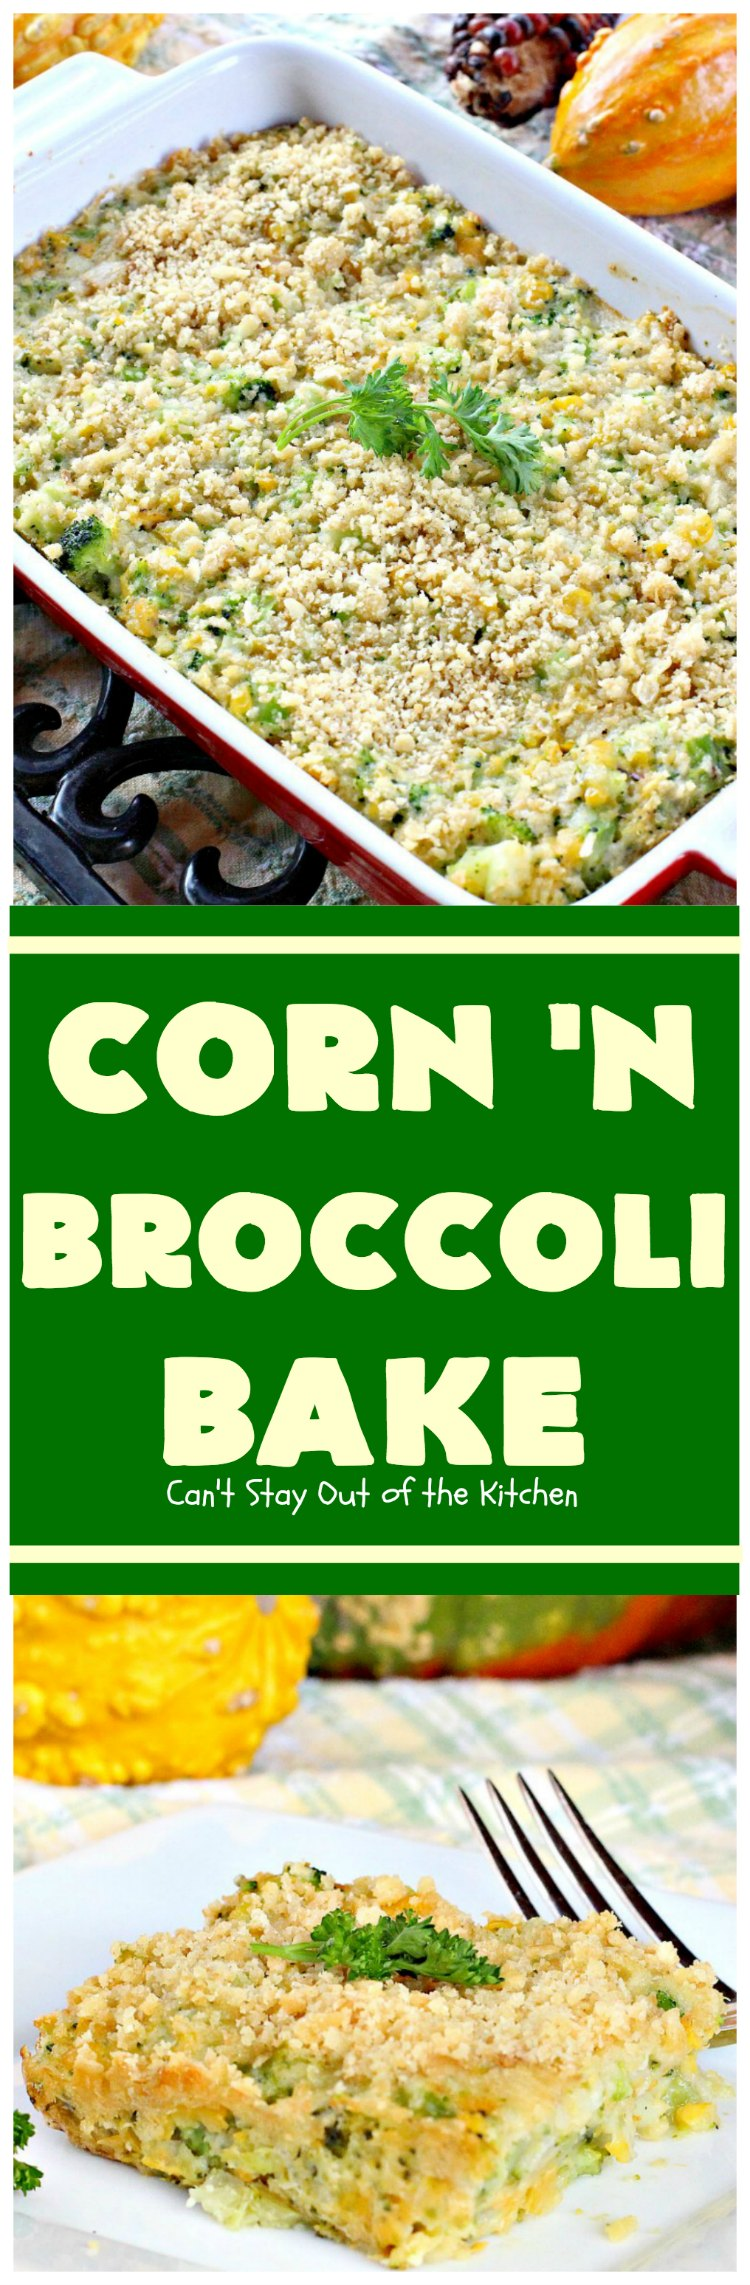 Corn 'n Broccoli Bake | Can't Stay Out of the Kitchen